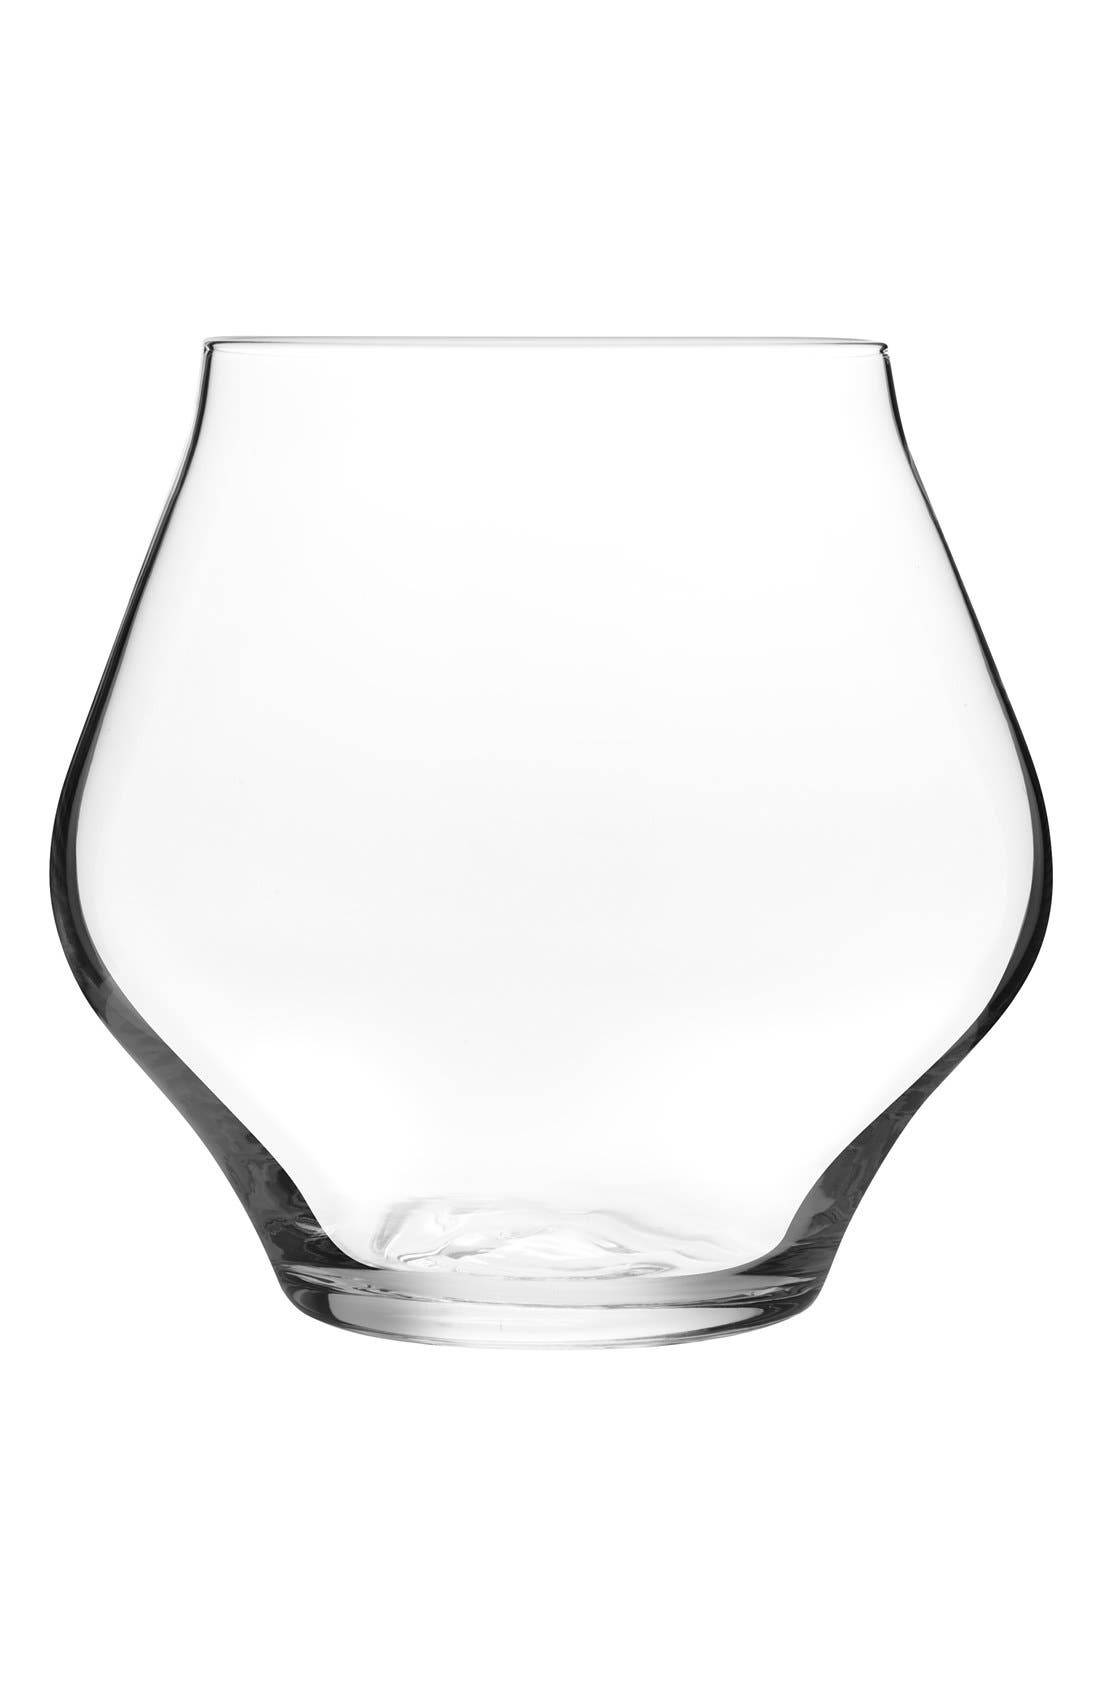 Set of 2 Stemless Wine Glasses,                             Main thumbnail 1, color,                             100